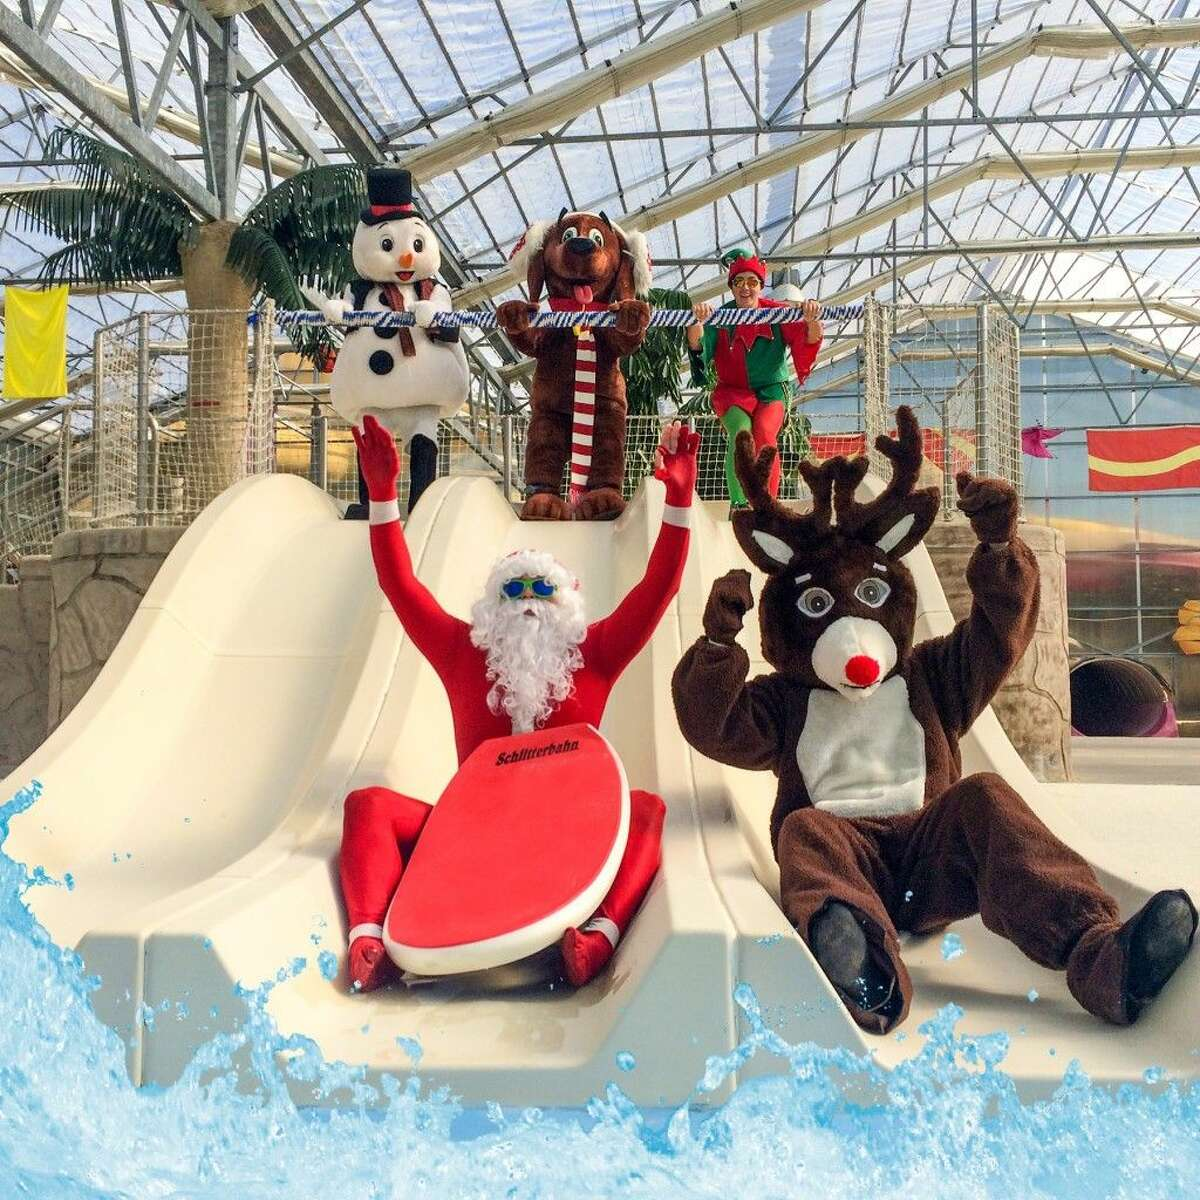 The celebration would not be complete without the traditional Holiday Splash activities like Surfing with Santa.